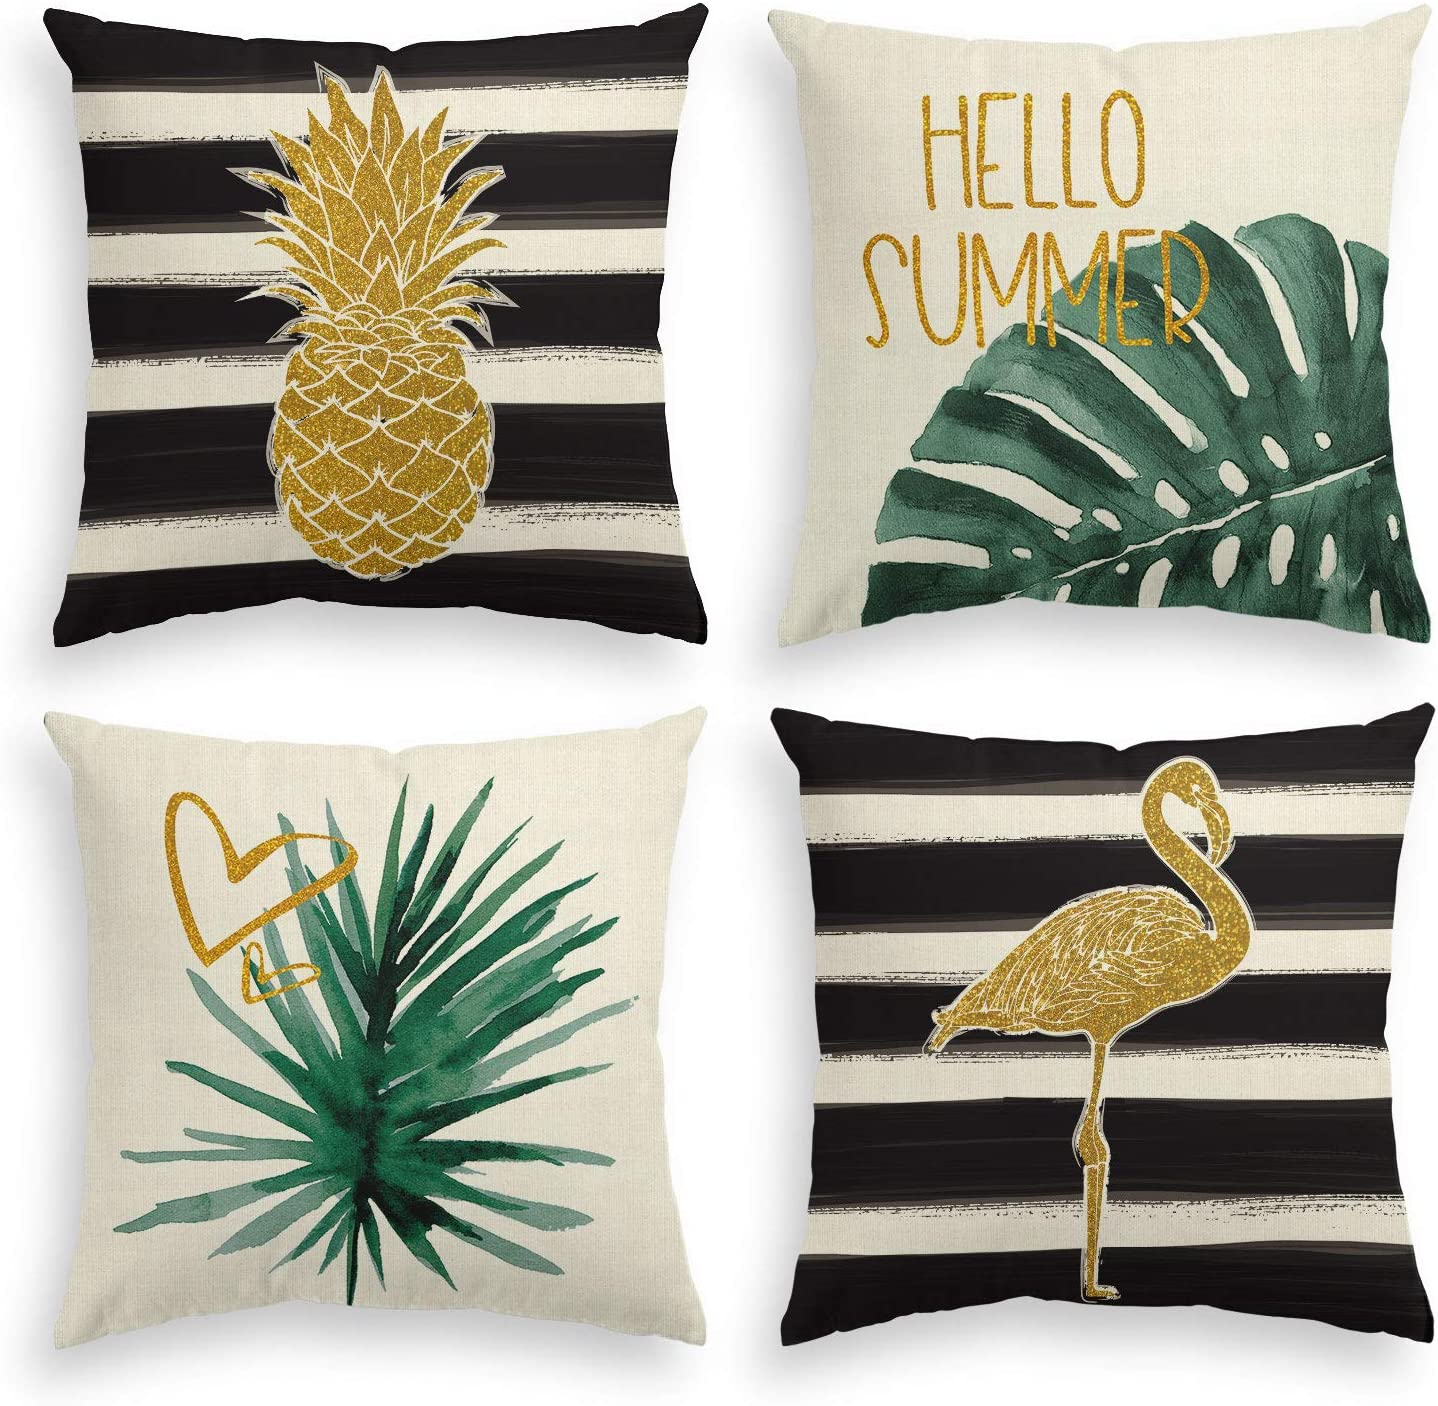 AVOIN colorlife Watercolor Stripes Tropical Plants Throw Pillow Cover, 18 x 18 Inch Pineapple Flamingo Monstera Cushion Case for Sofa Couch Set of 4